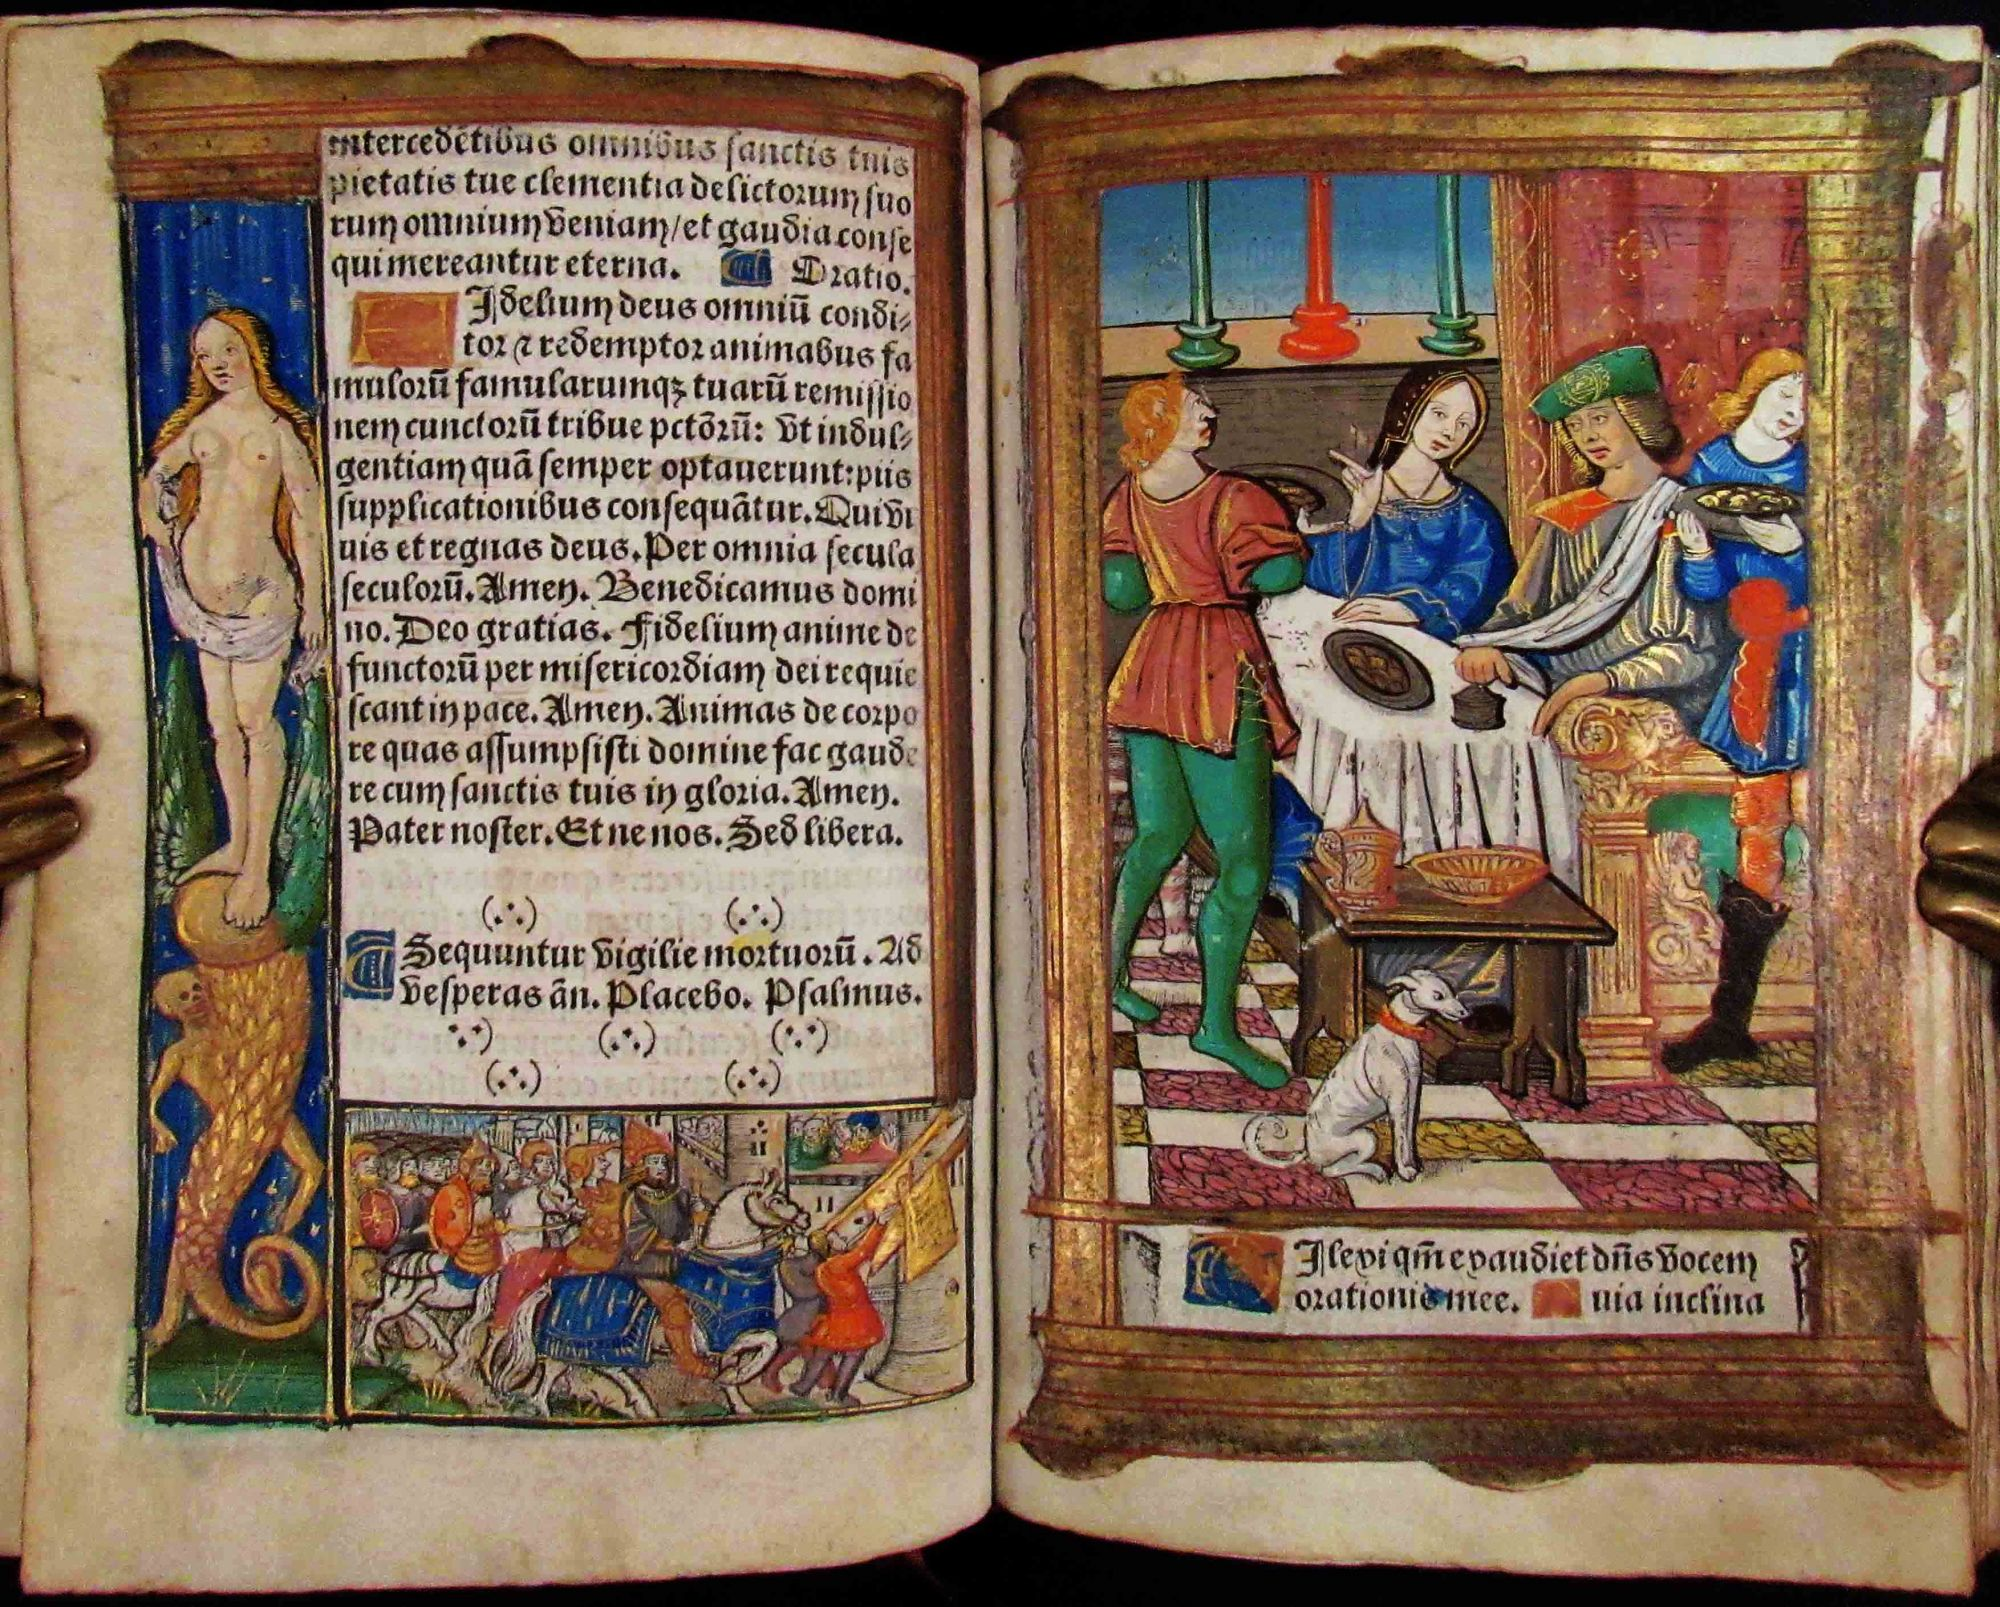 BOOK OF HOURS, Latin and French, Use of Rome. Latin Book of Hours, Use of Rome French.